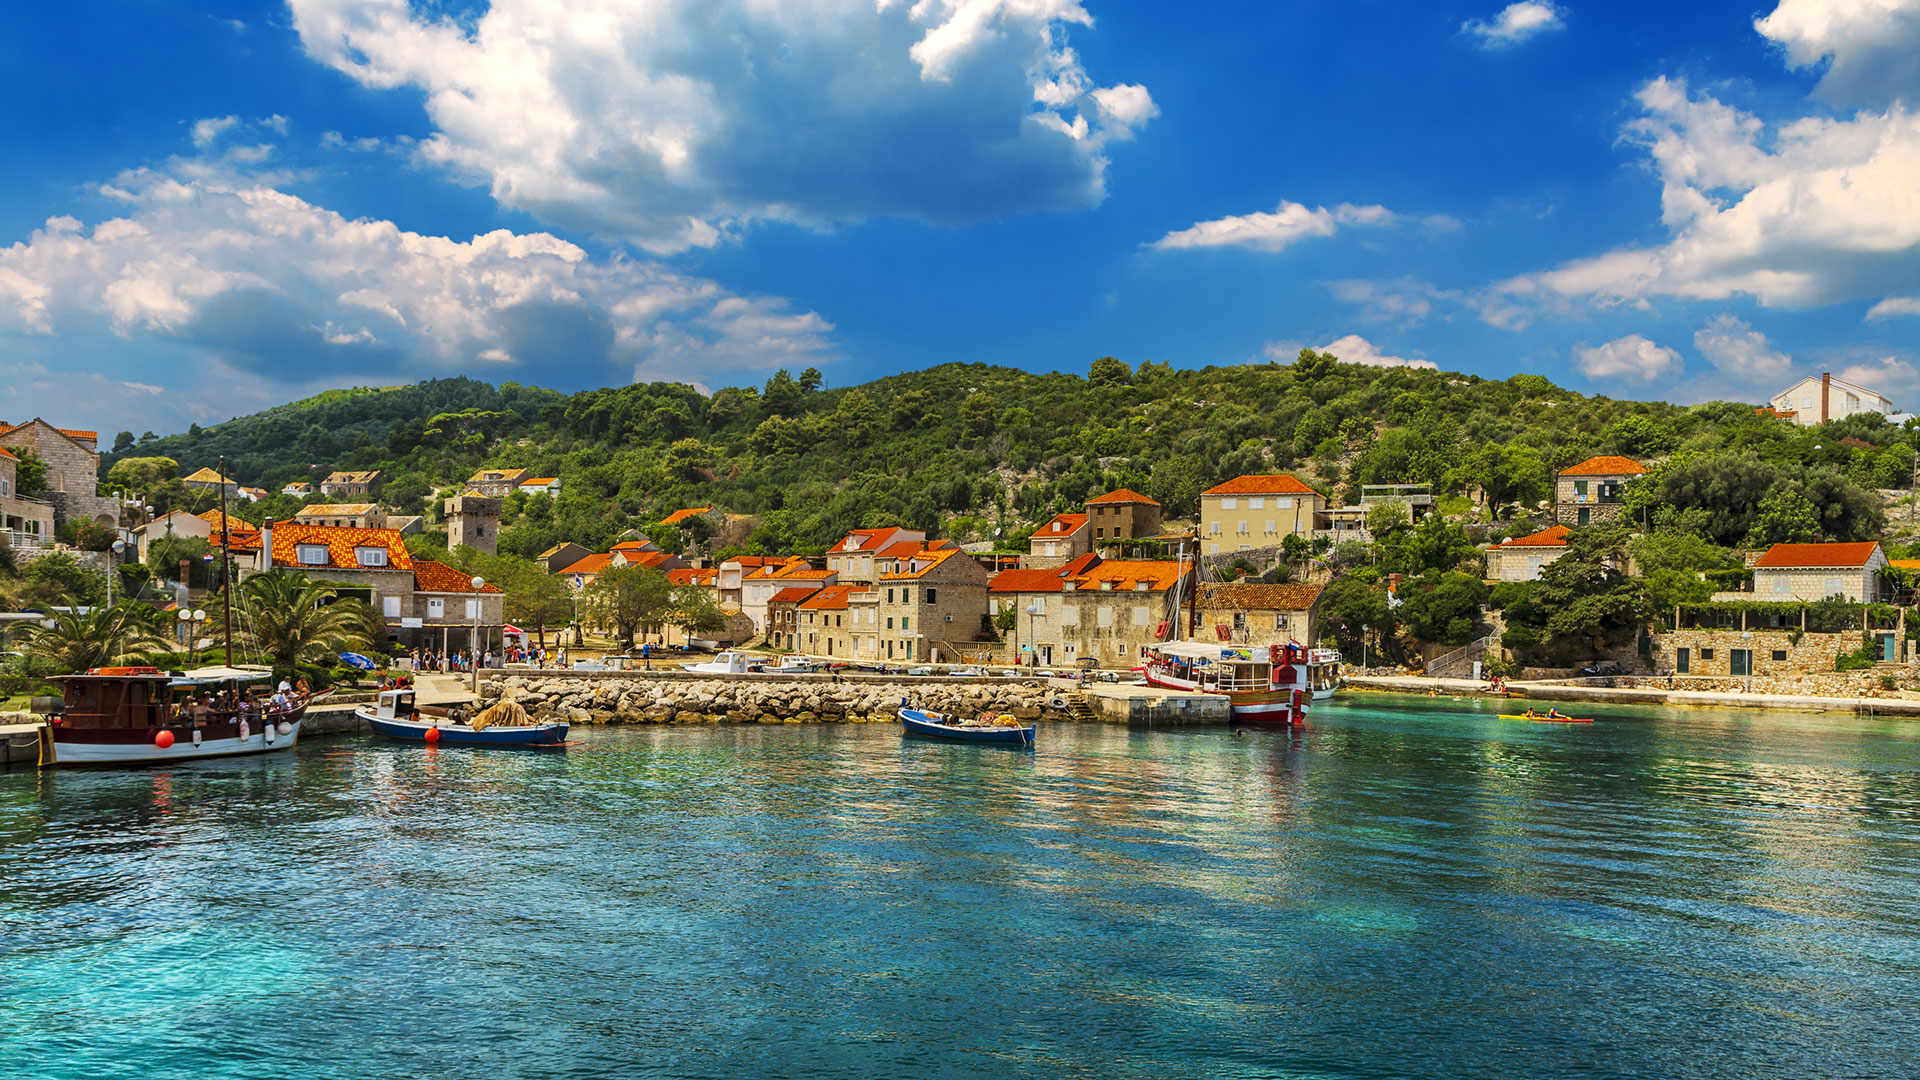 Island Of Sipan, Croatia